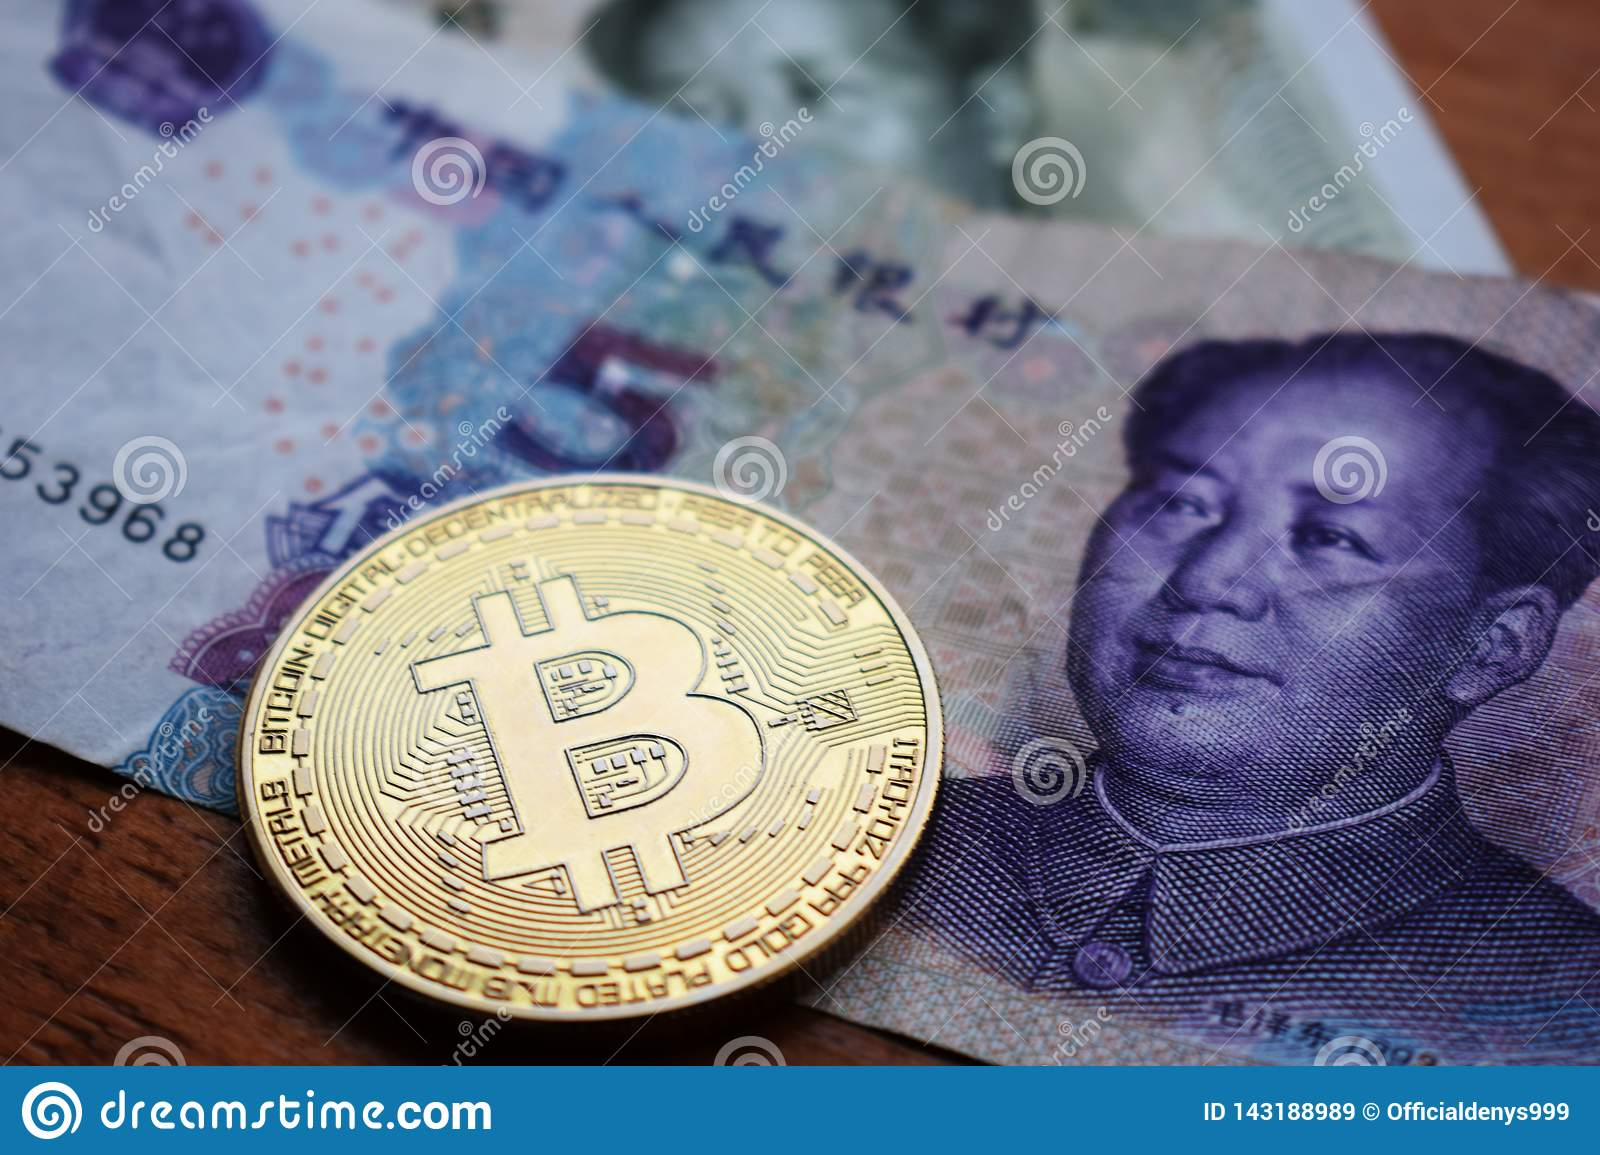 bitcoin gold in china crypto in calo